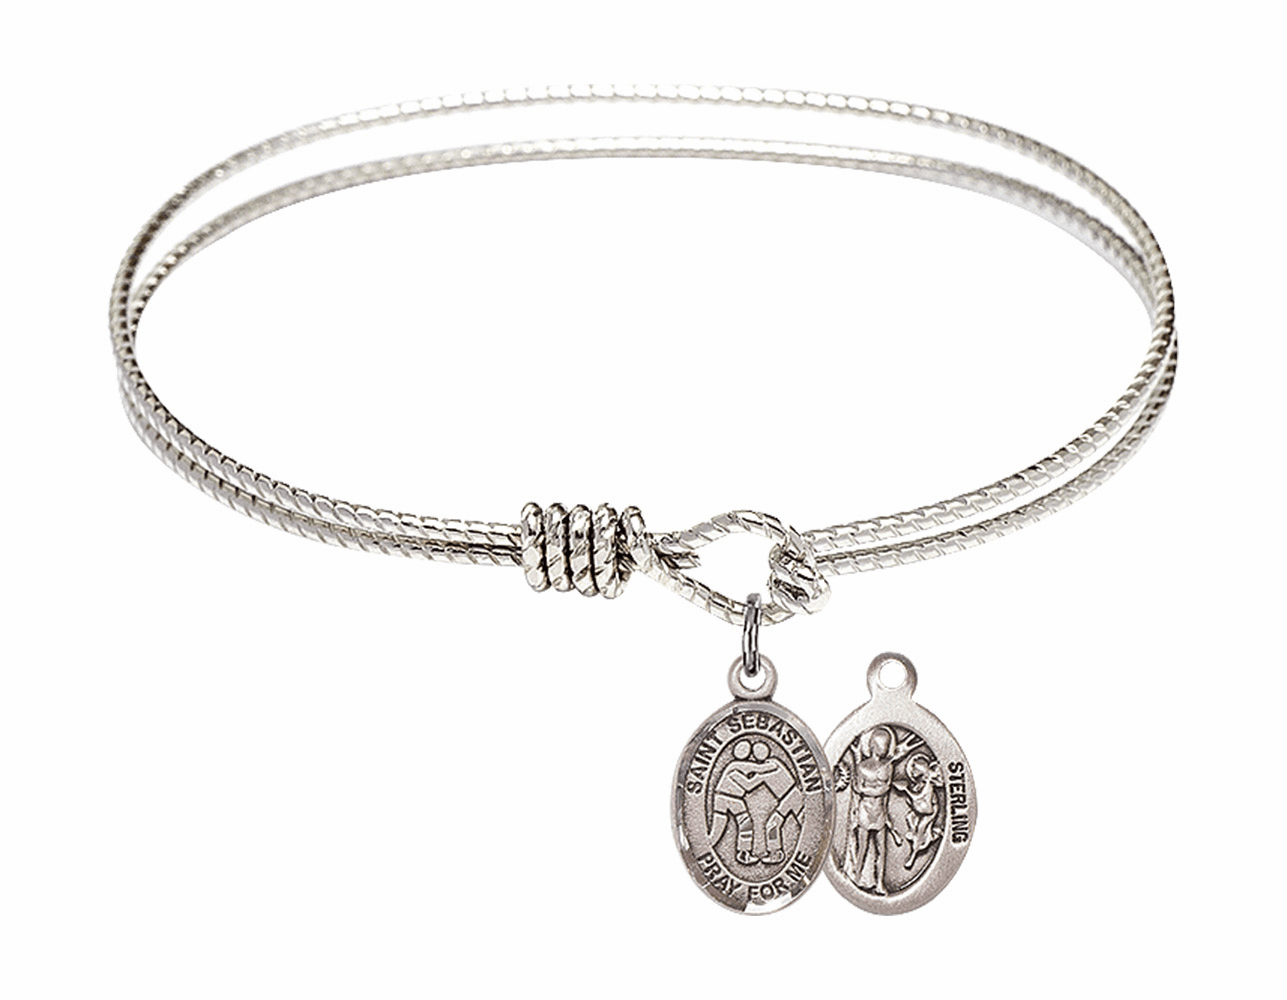 Twist Round Eye Hook St Sebastian Wrestling Bangle Charm Bracelet by Bliss